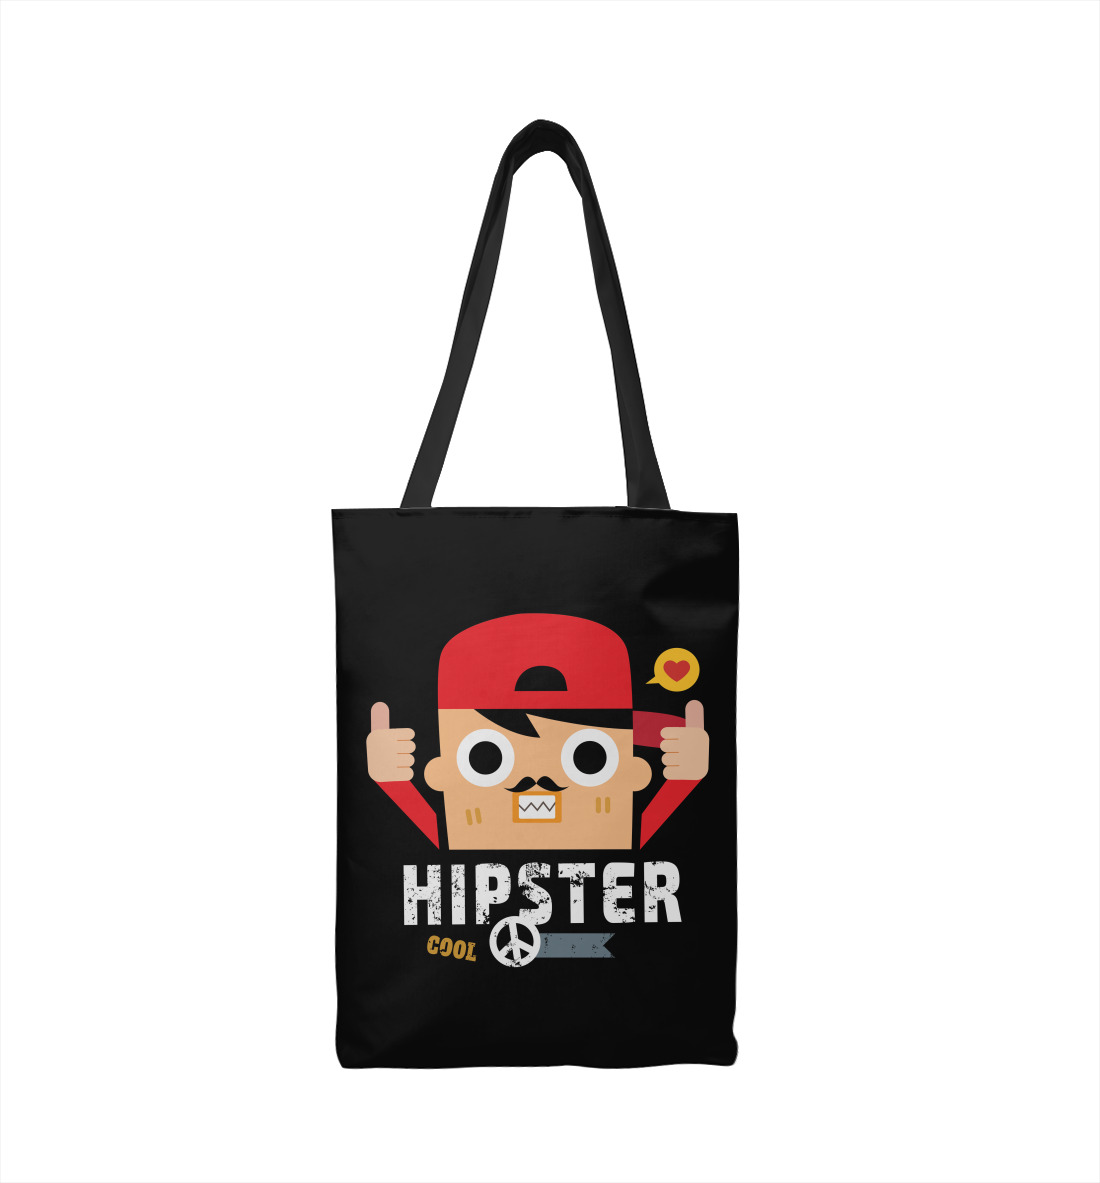 Hipster cool